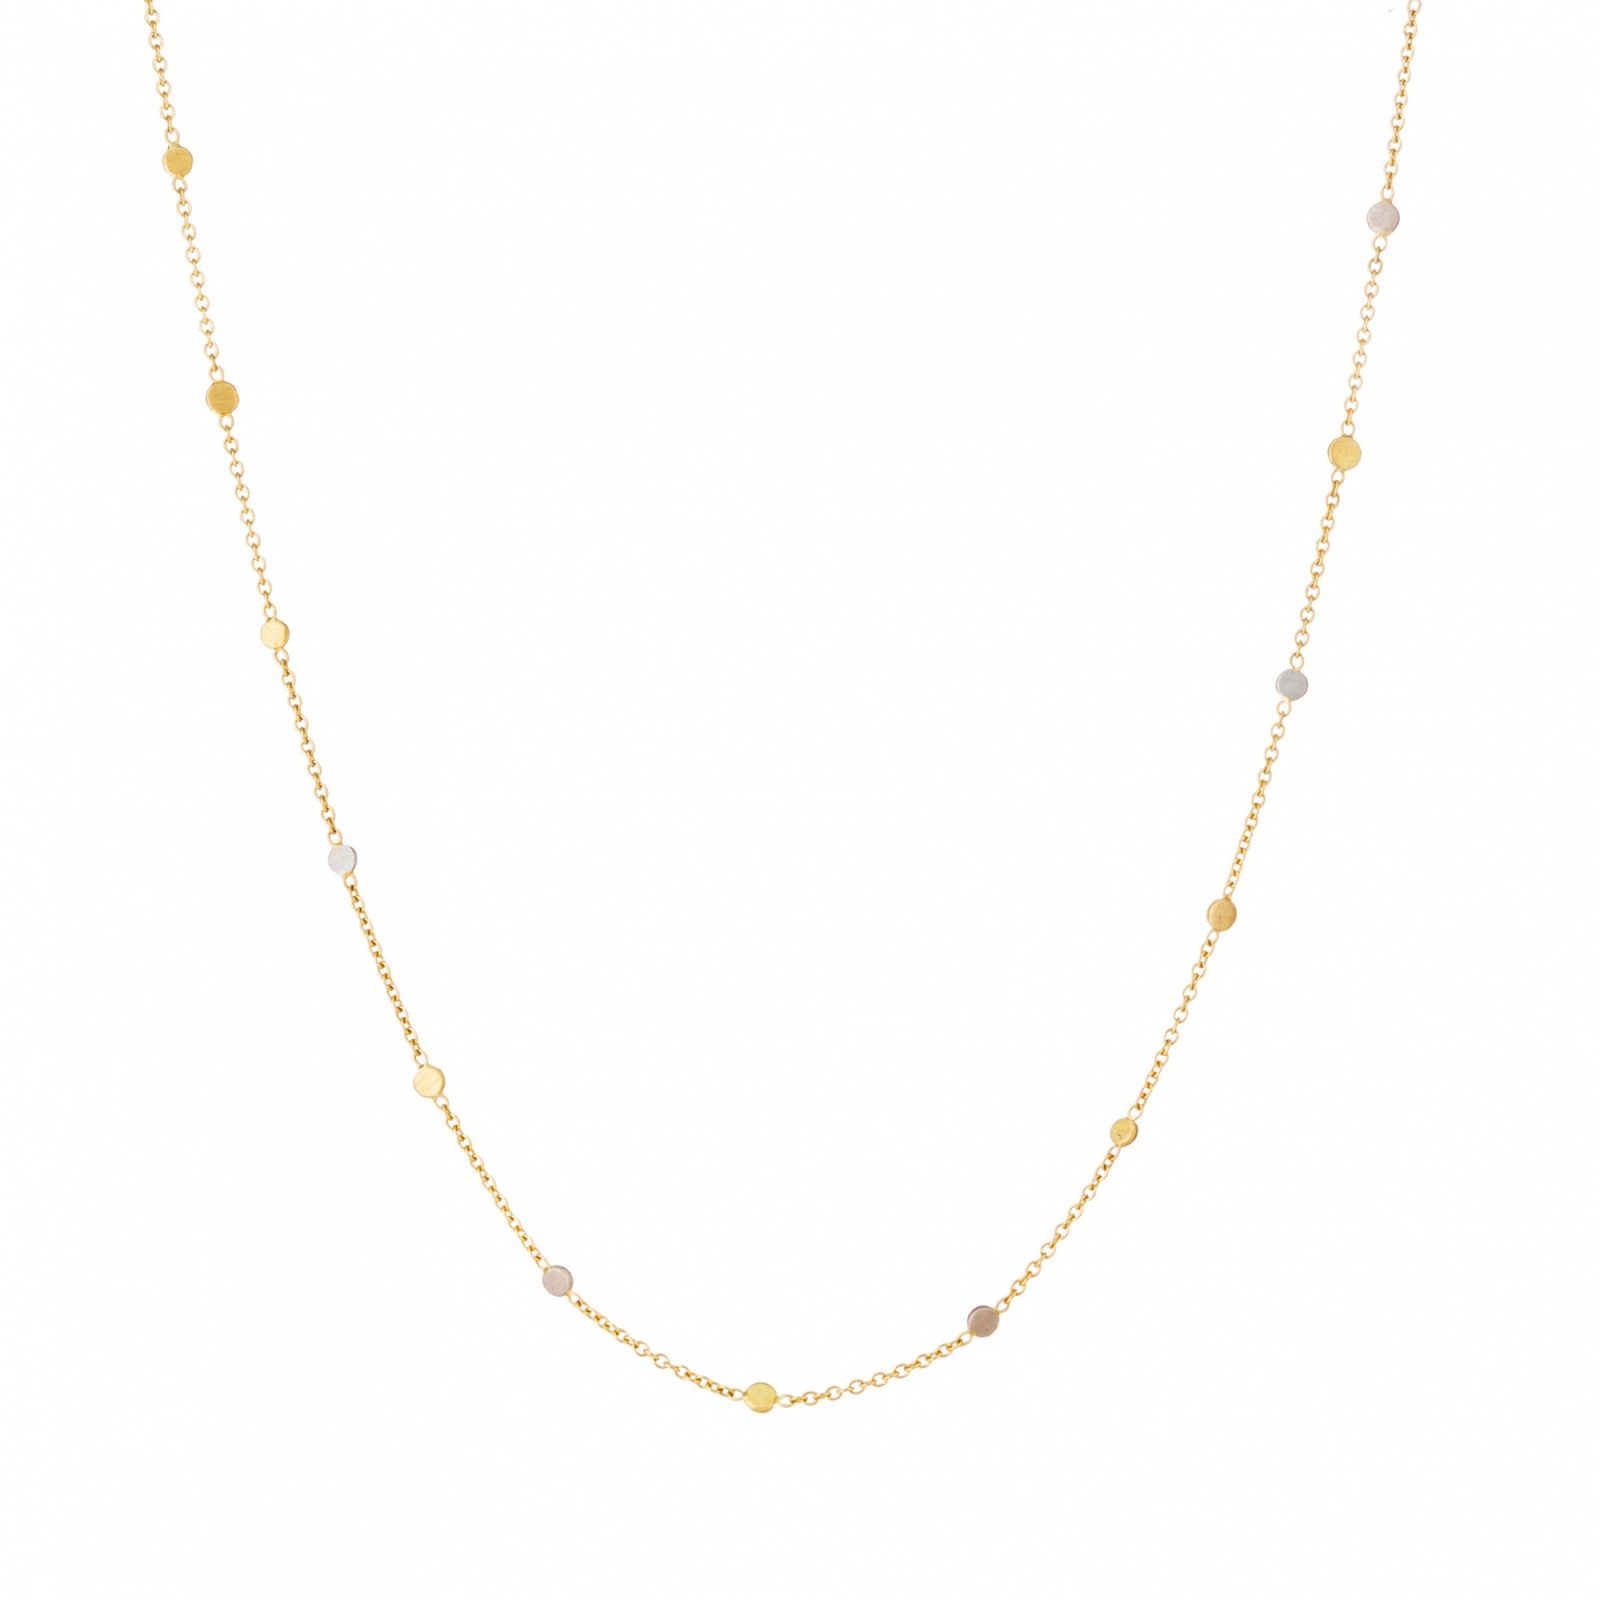 Sia Taylor SN4 YWP Gold Platinum Dust Necklace WB